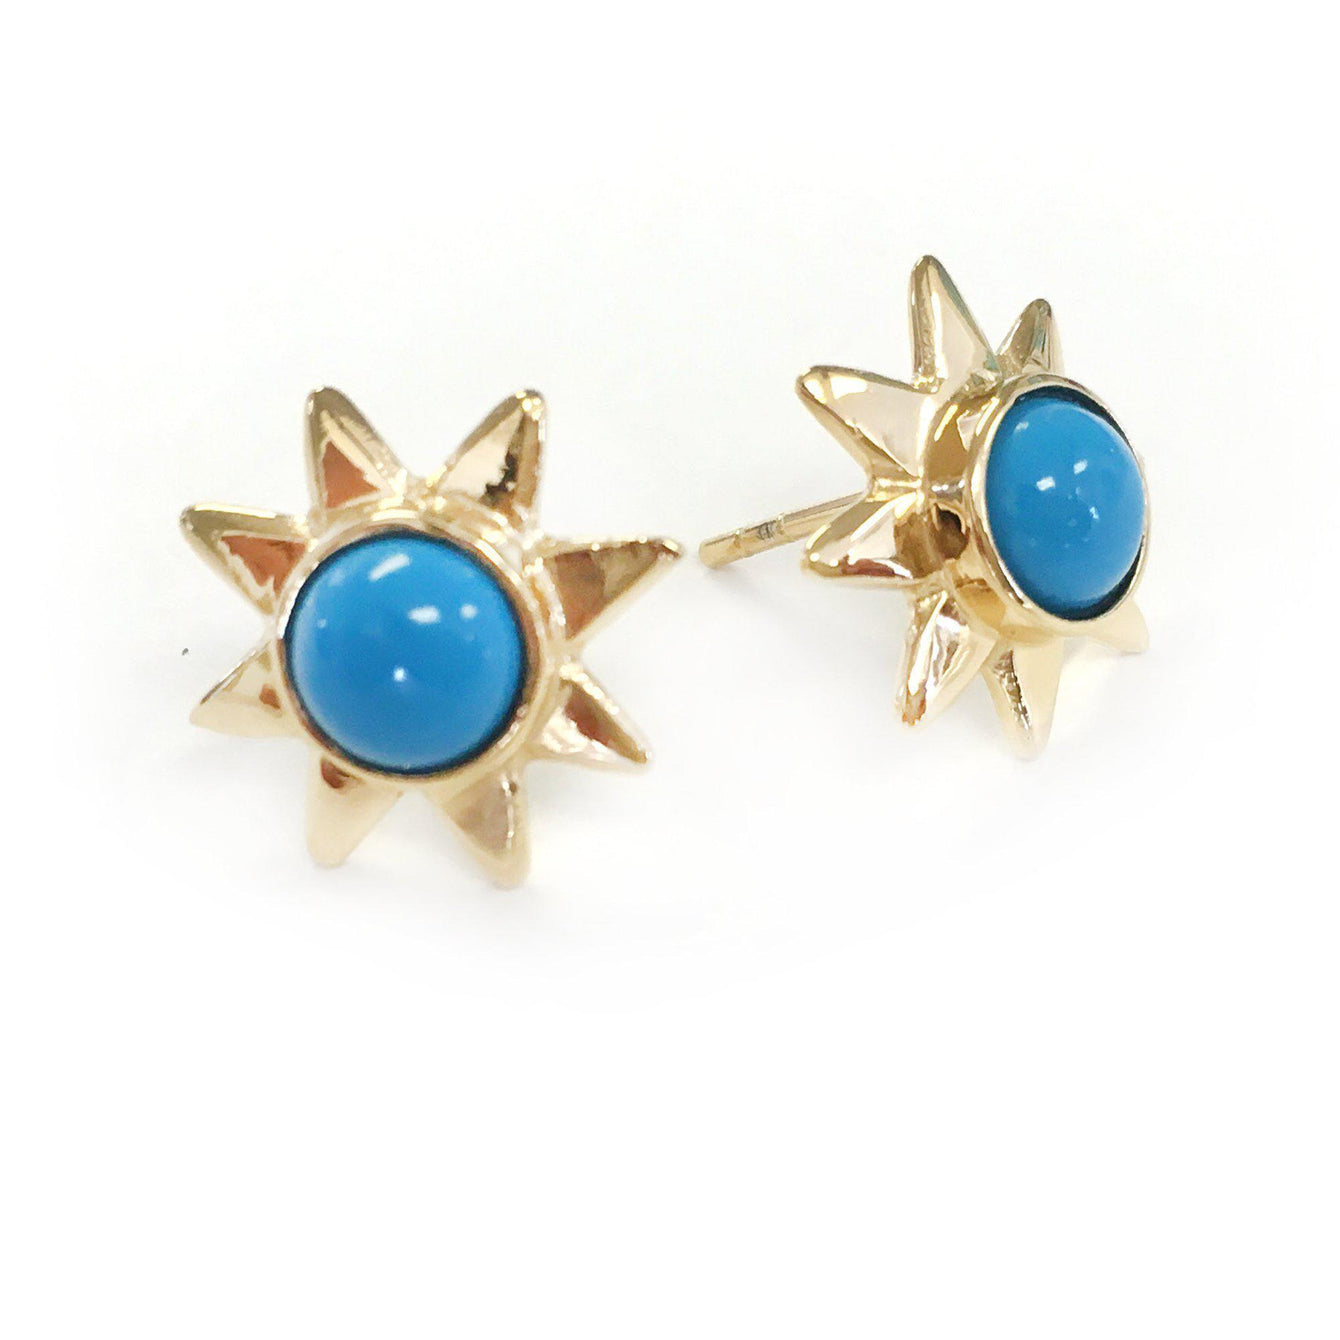 Starr 24k Gold Studs Genuine Gemstone Earrings-Women - Jewelry - Earrings-ADDISON WEEKS-Blue Turquoise-Peccadilly